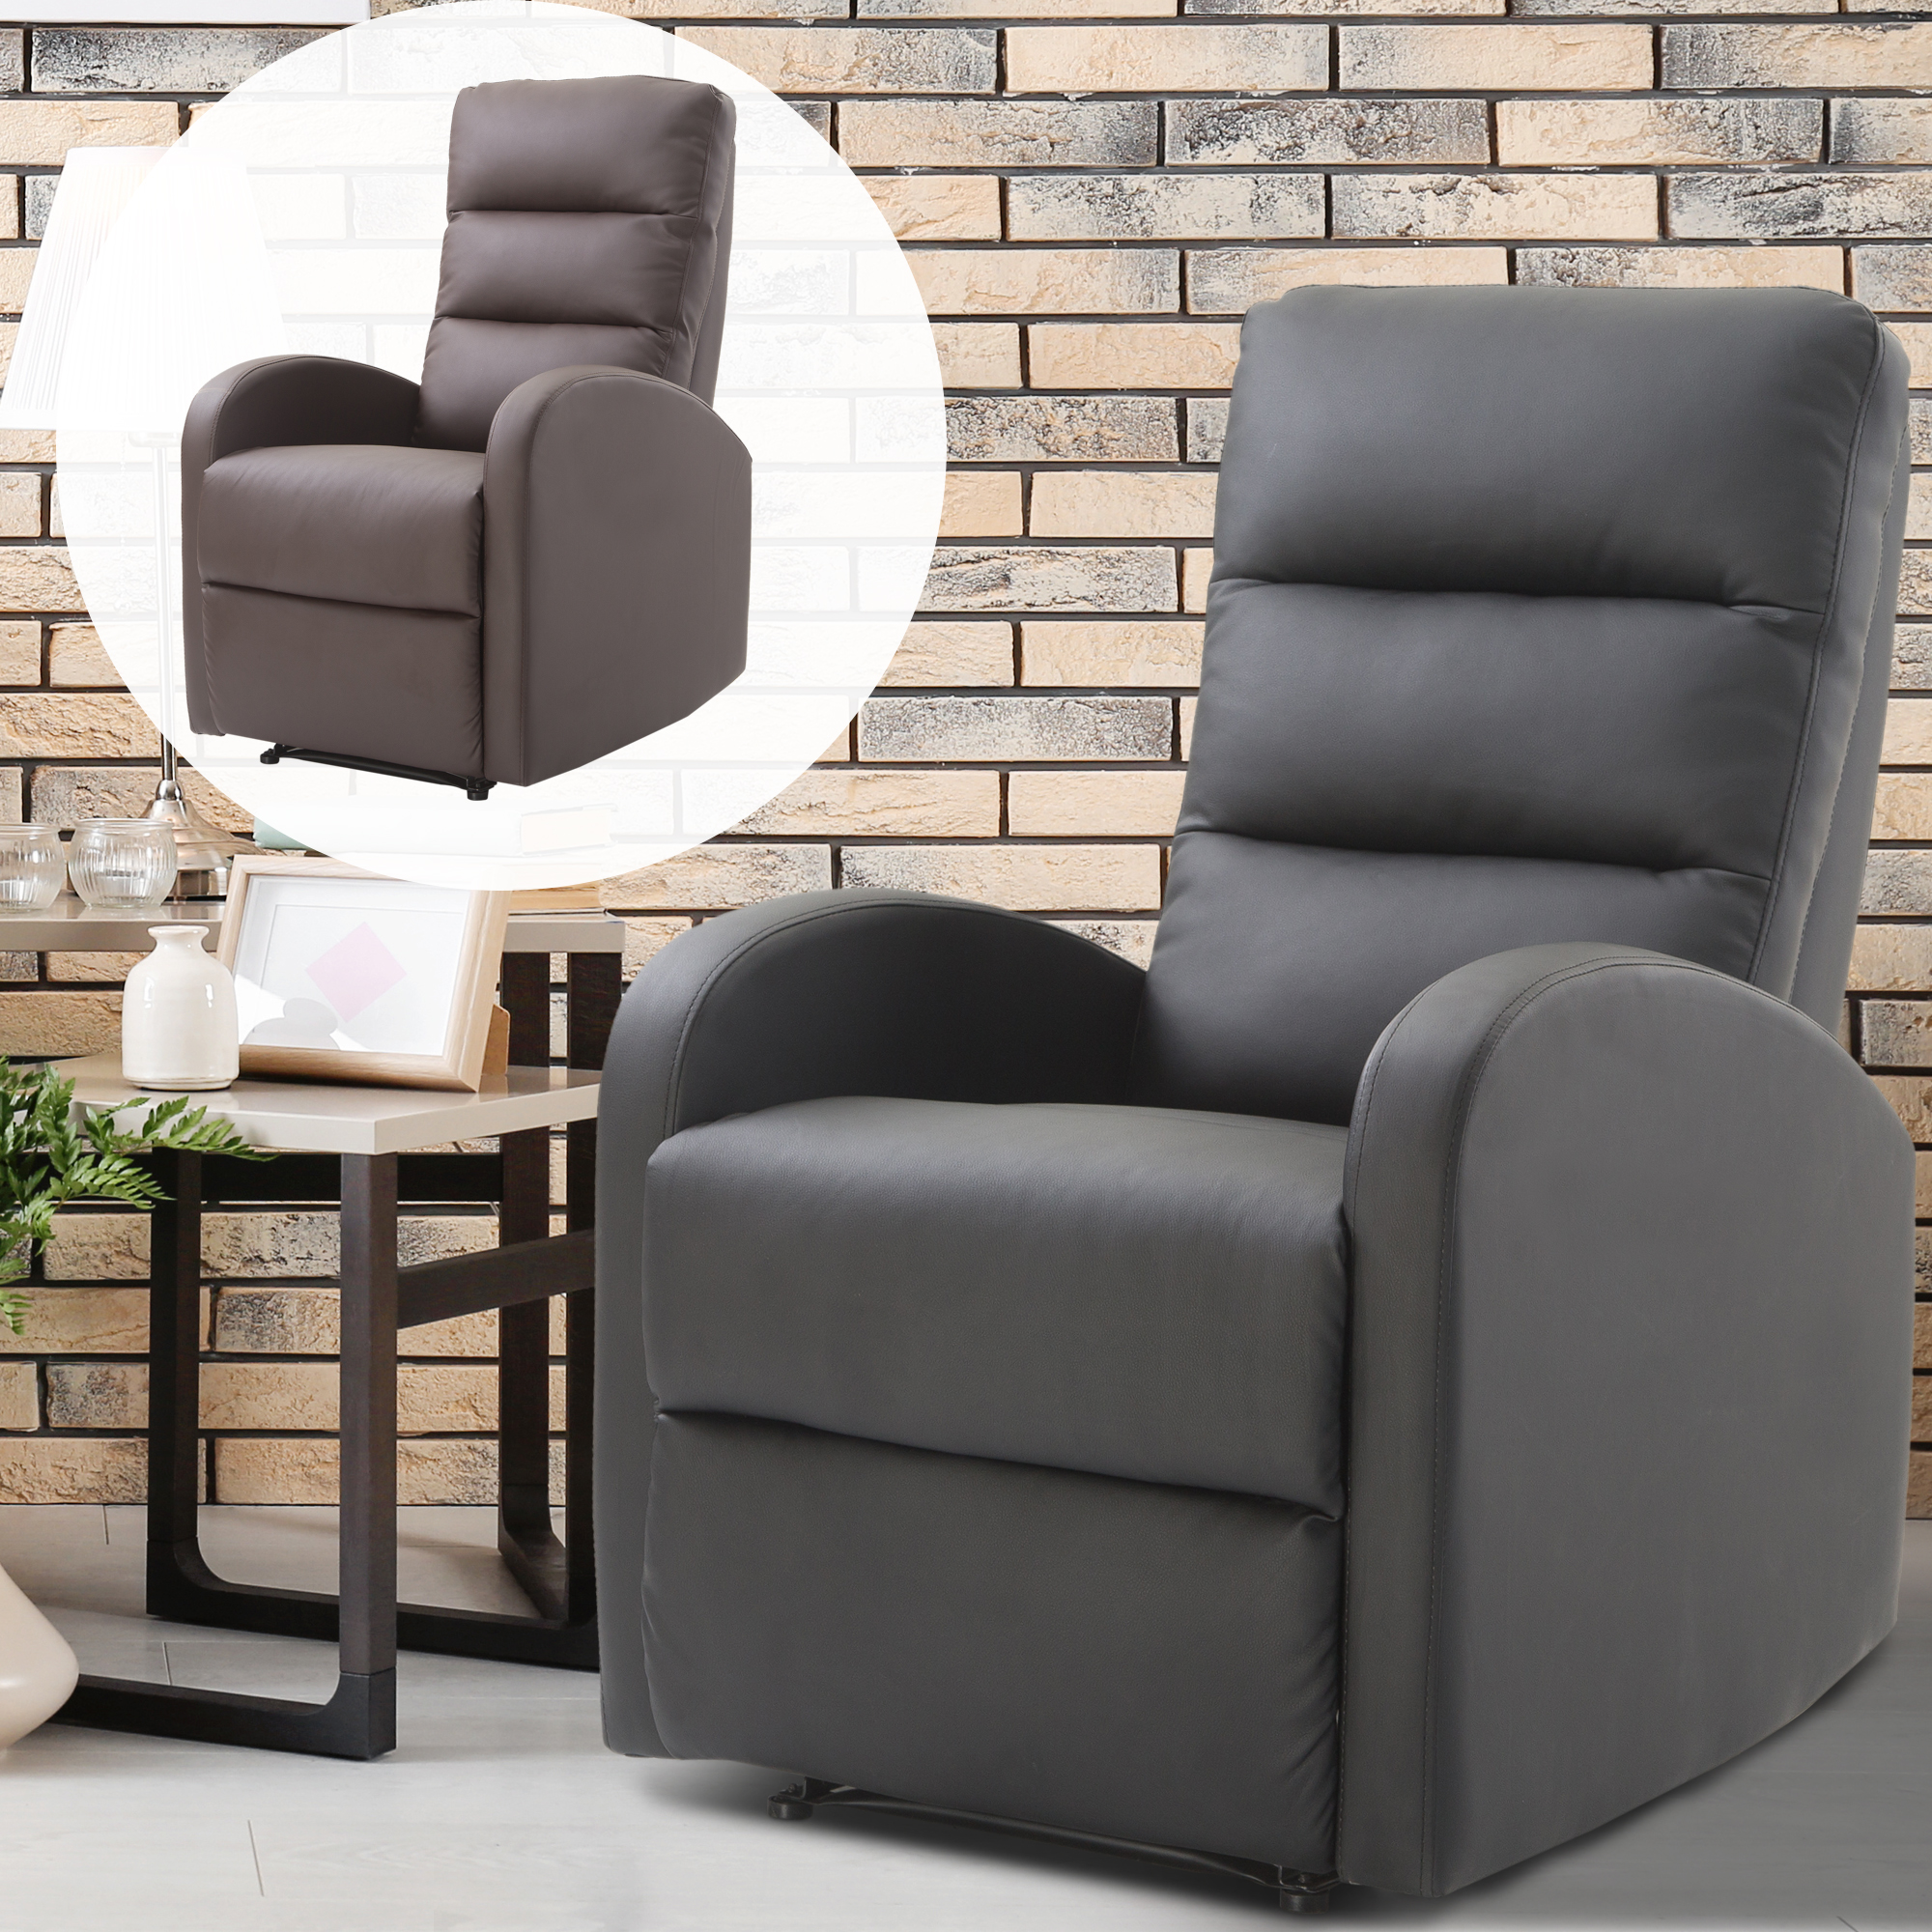 Details about pu leather recliner sofa armrest chair living room reclining furniture footrest